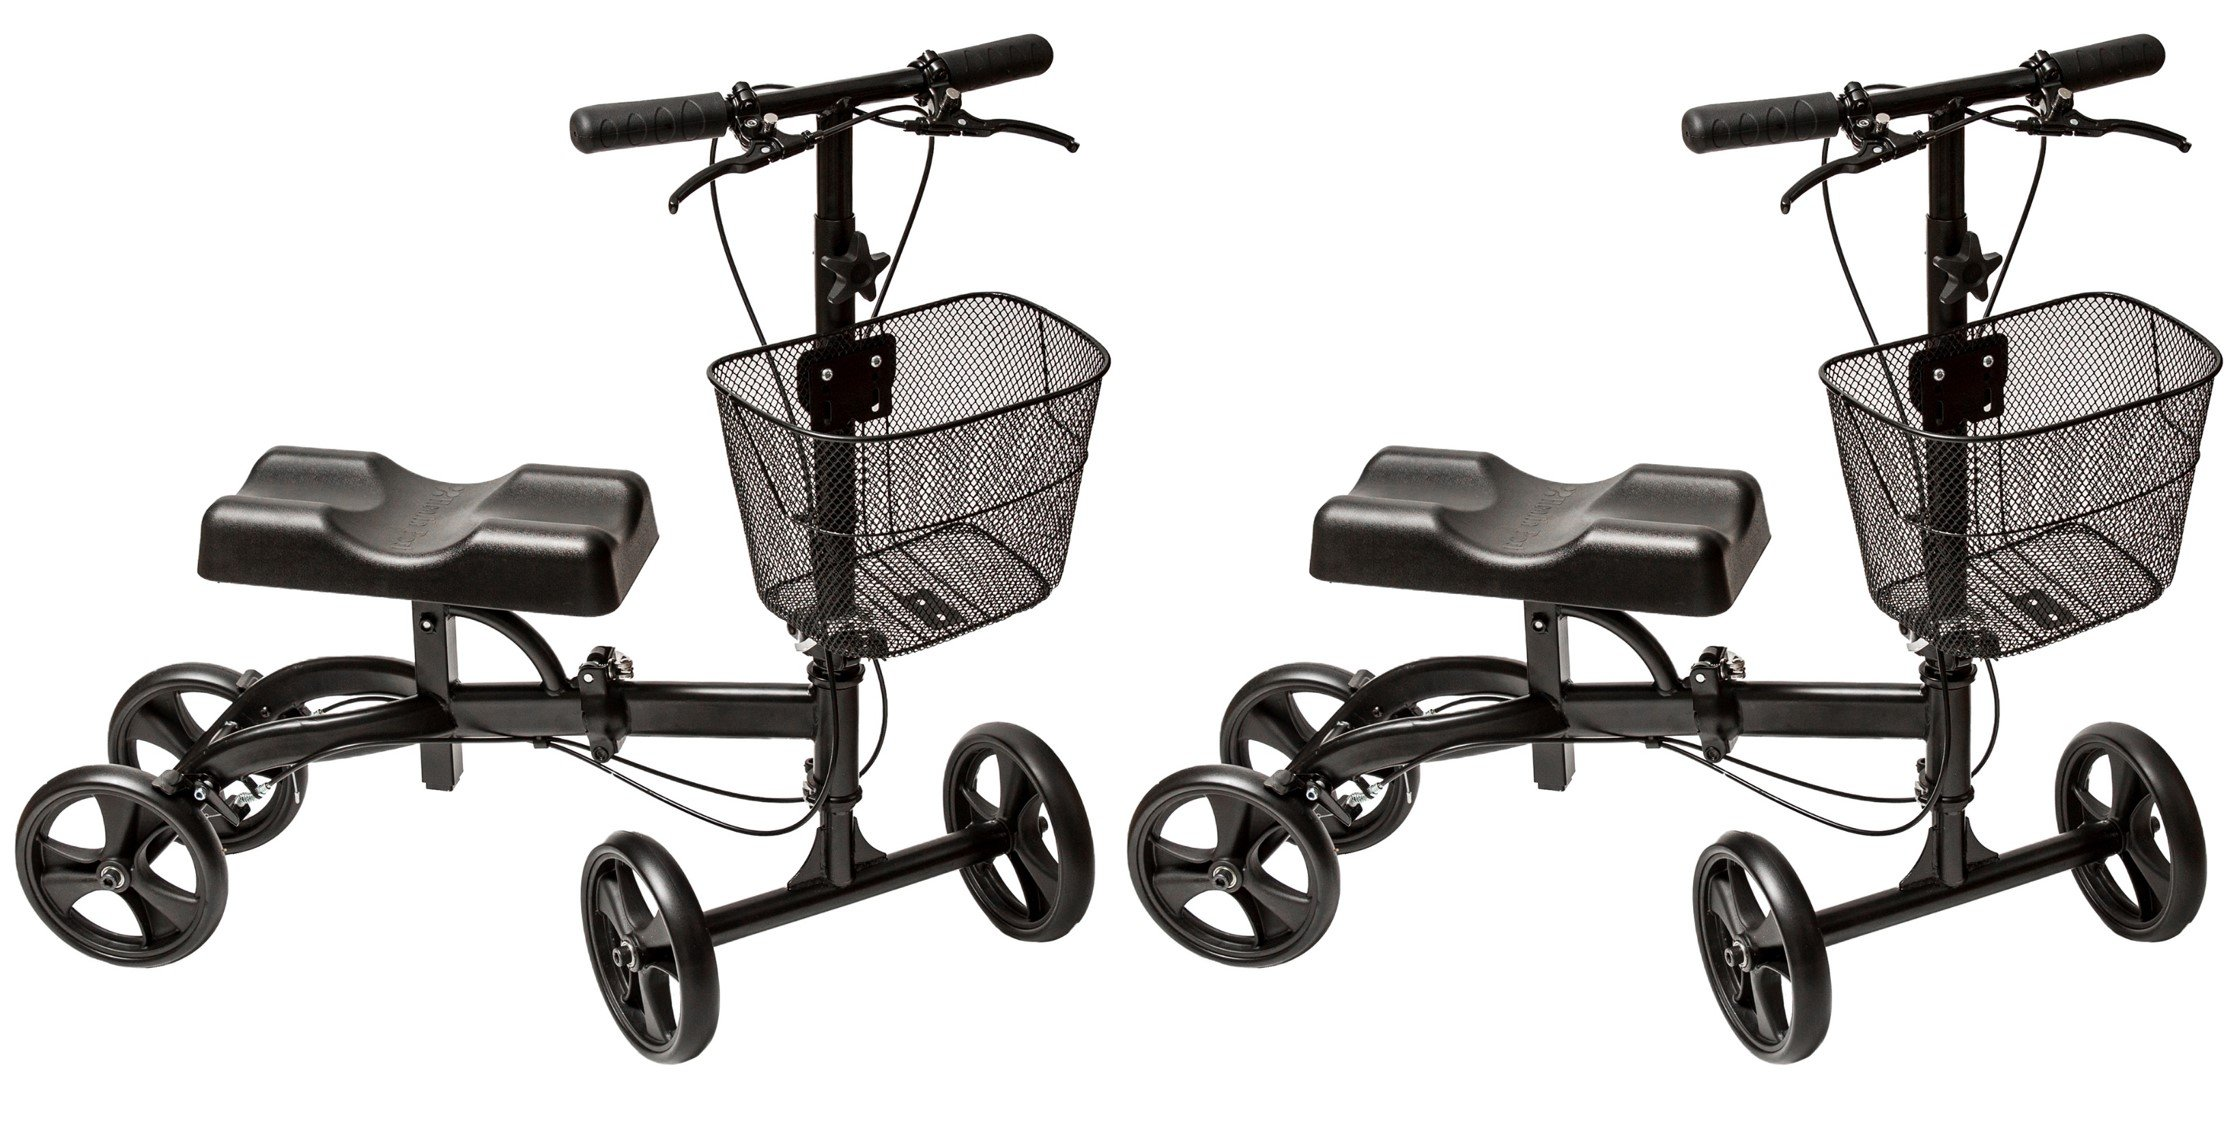 [2 PCS] Folding Medical Knee Walker (Matte Black) - The Only Rollabout Knee Scooter Engineered to Turn on a Dime